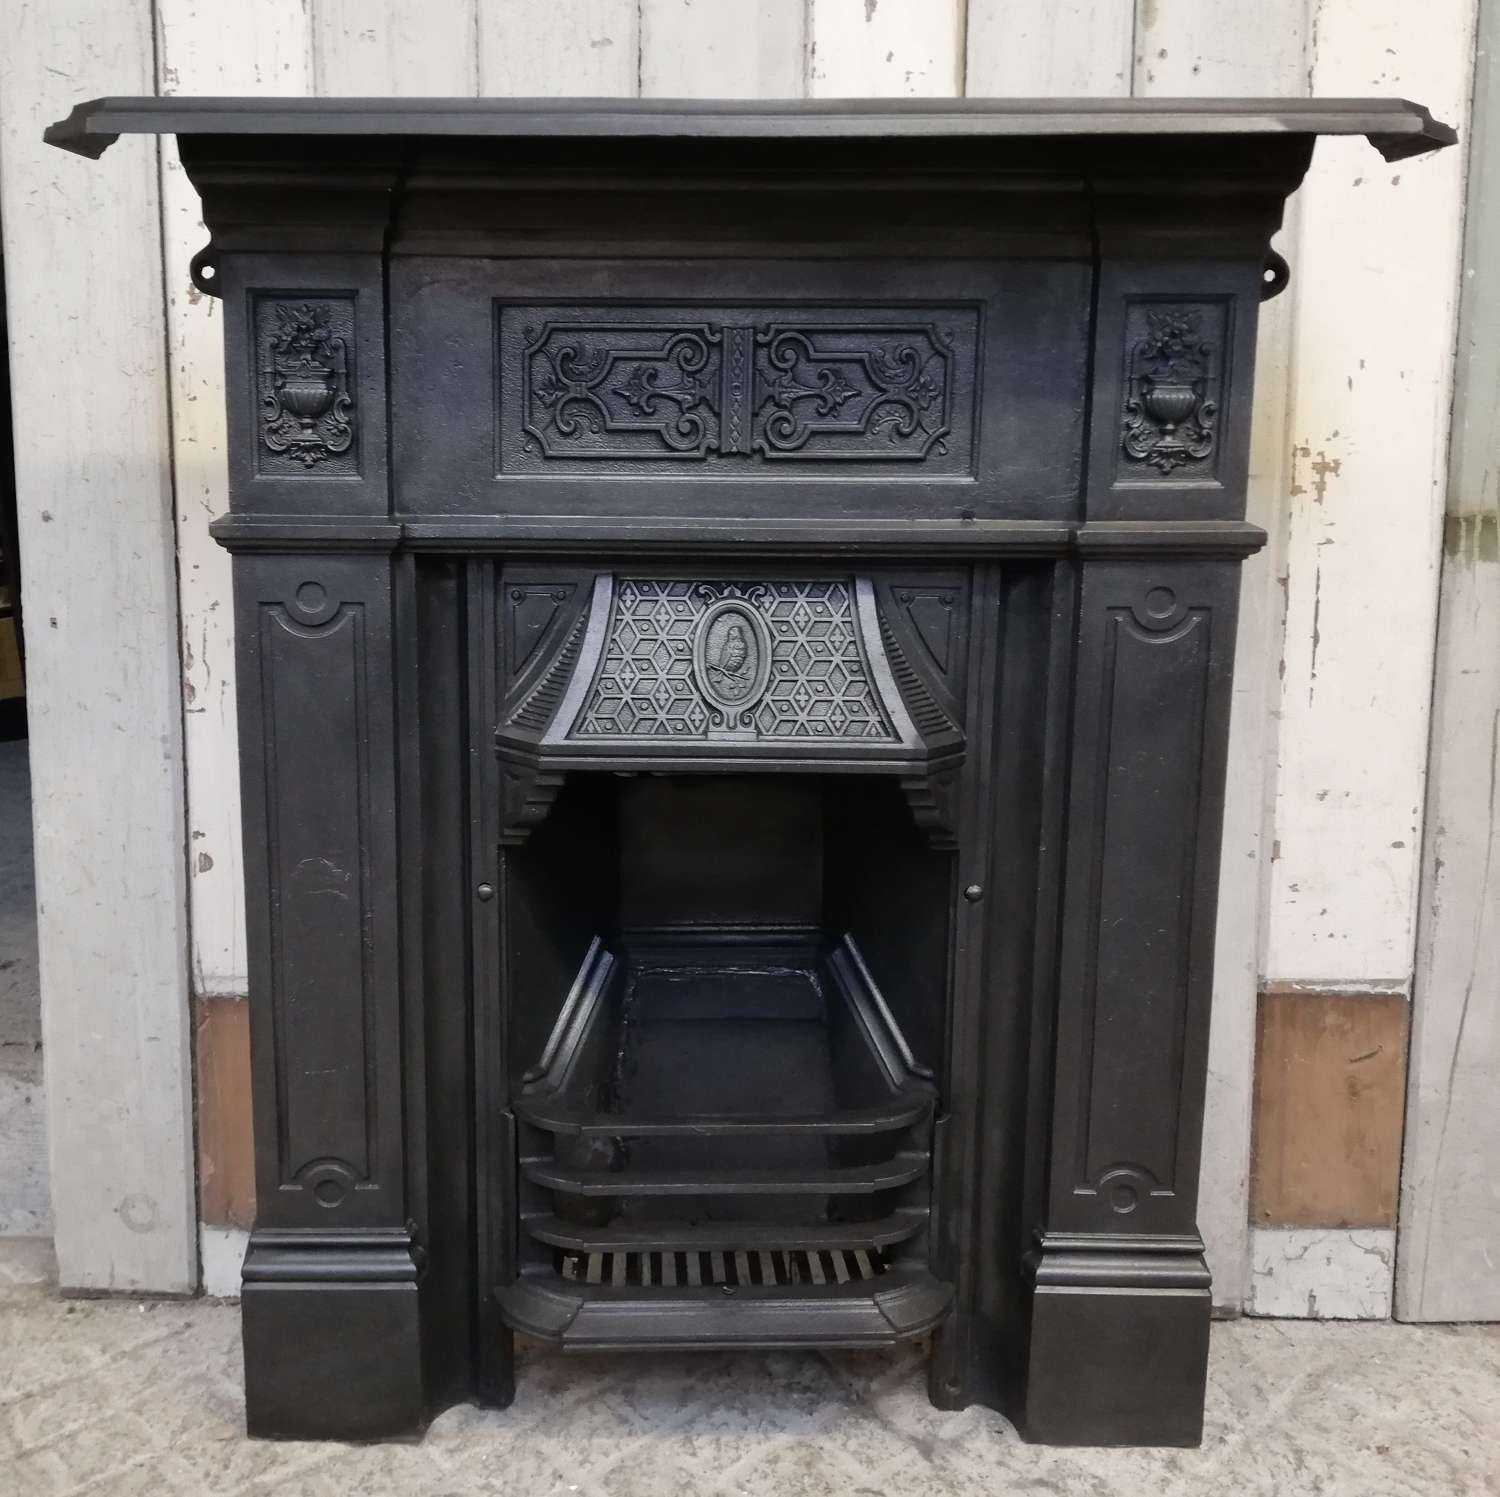 FC0080 ORNATE RECLAIMED ANTIQUE VICTORIAN CAST IRON COMBINATION FIRE